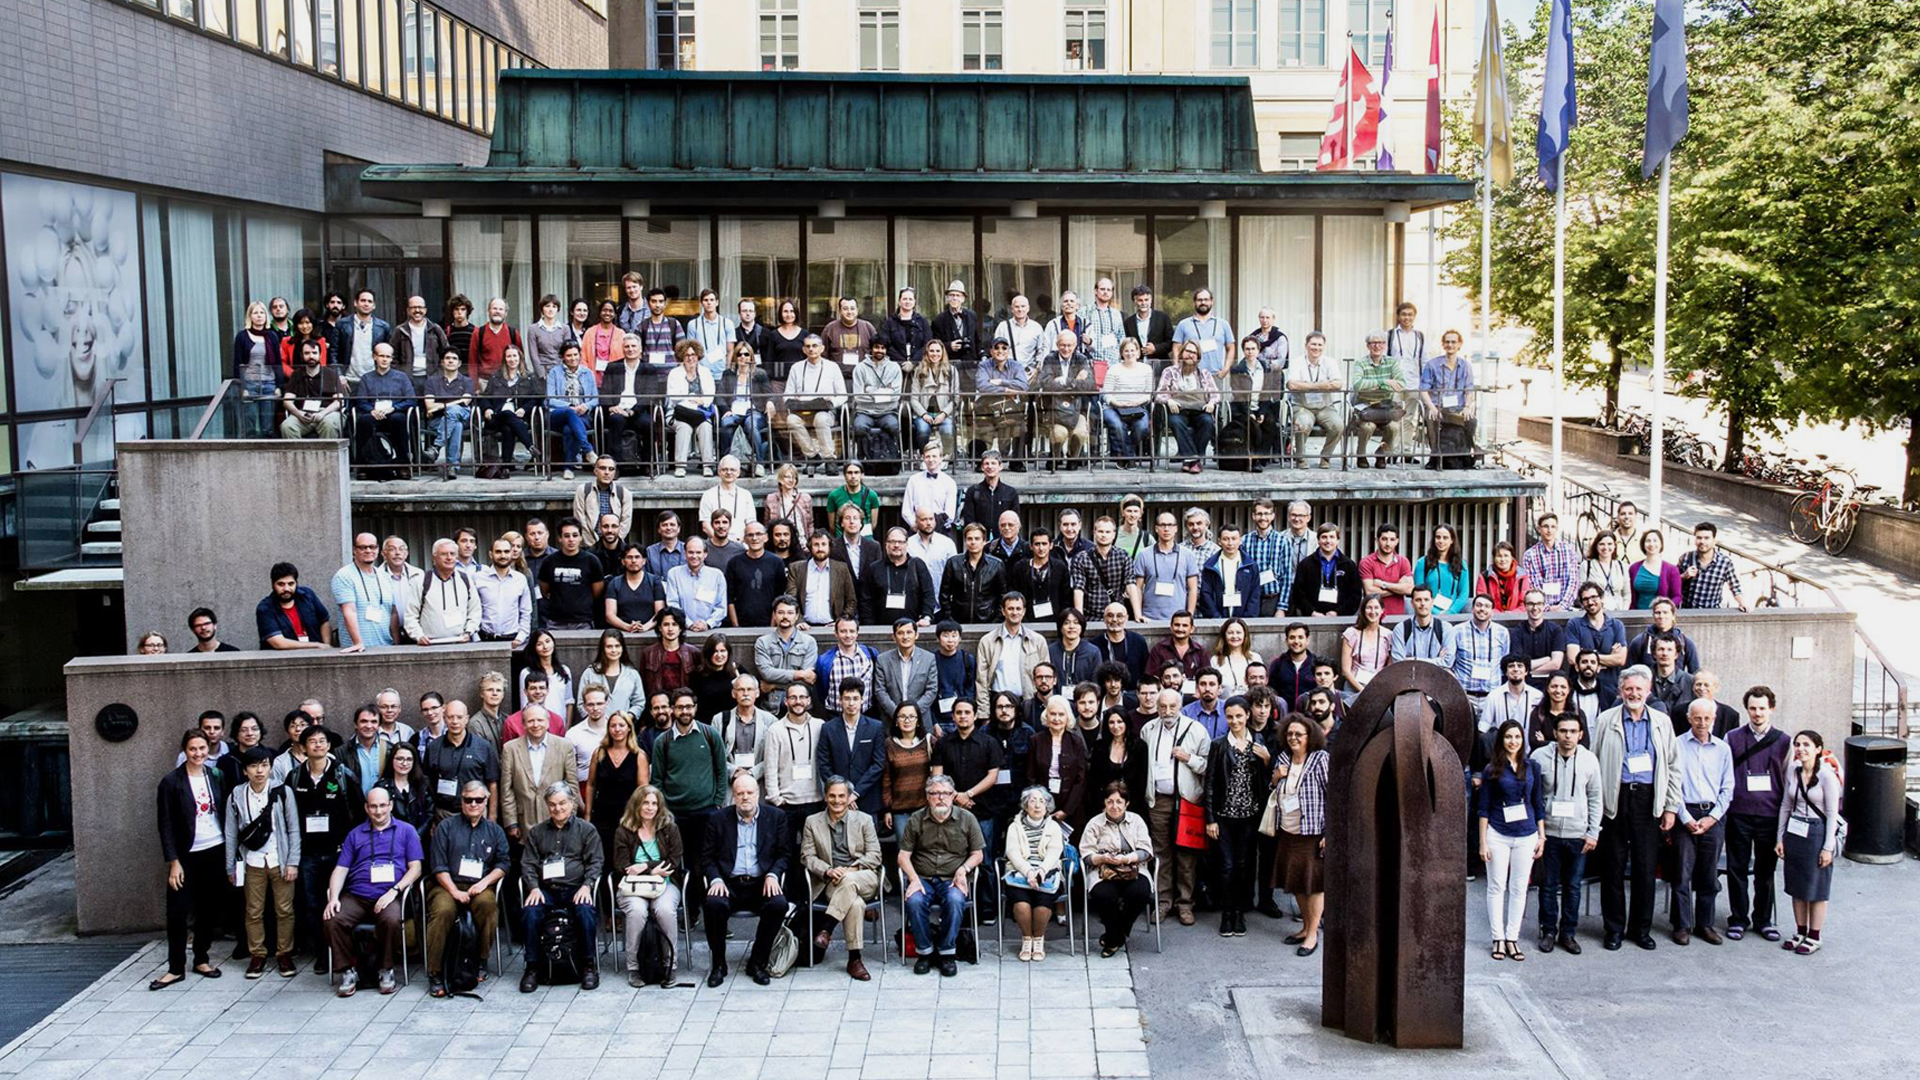 A large group picture in front of University of Helsinki